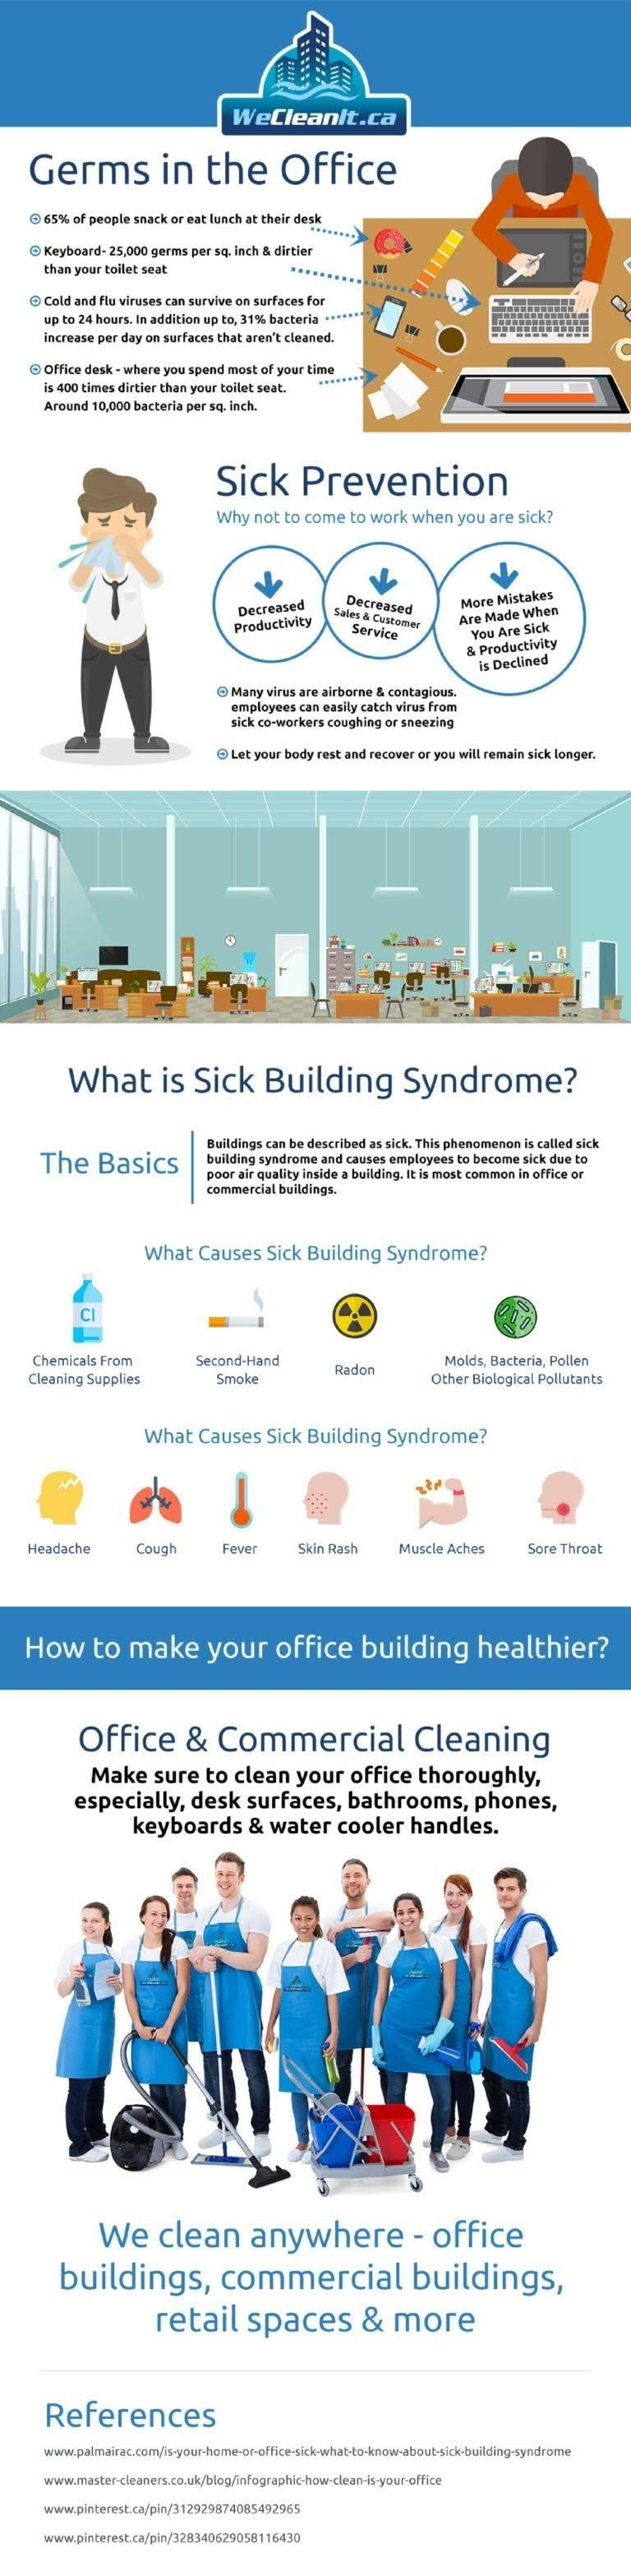 Office cleaning up sick days for less employees #infographic